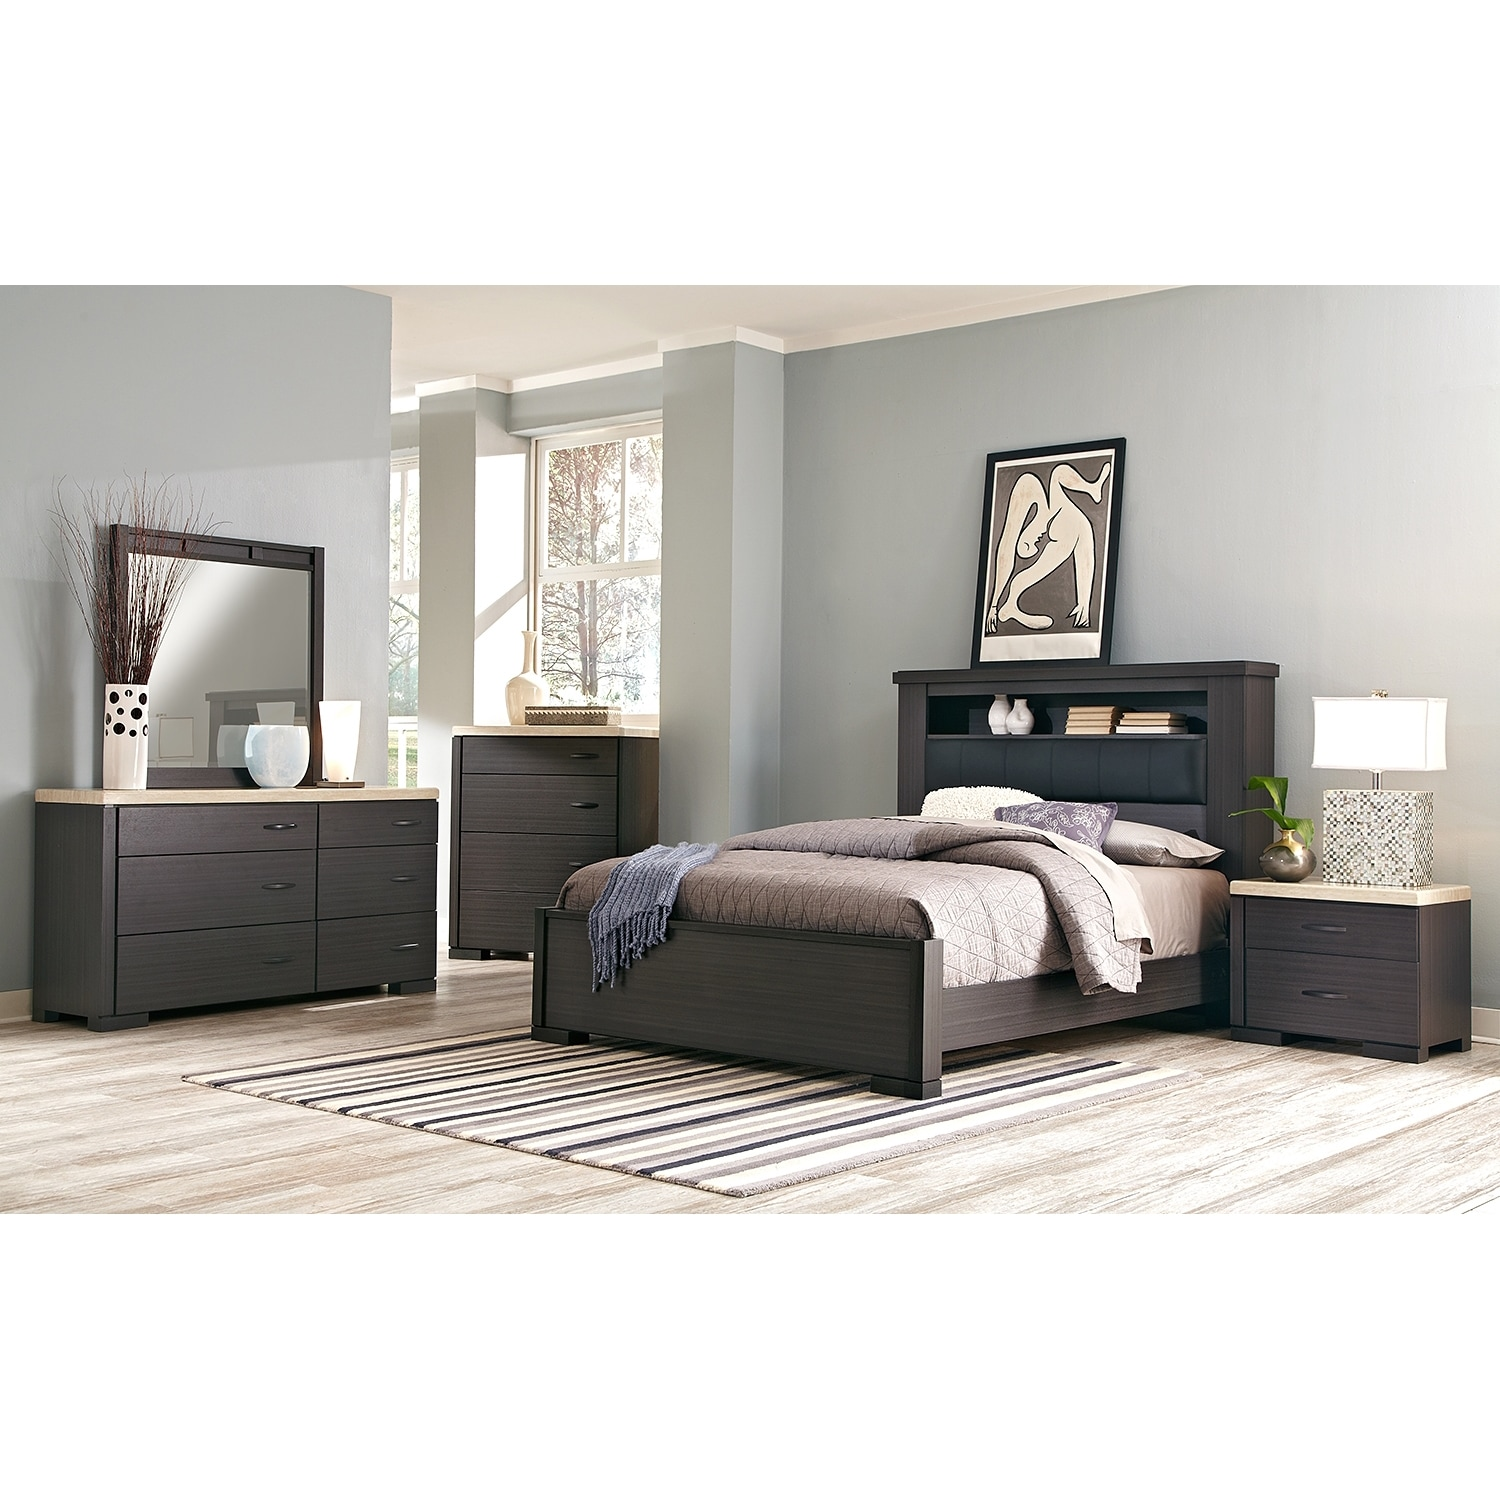 Bedroom Furniture - Camino 7-Piece Queen Bedroom Set - Charcoal and ...